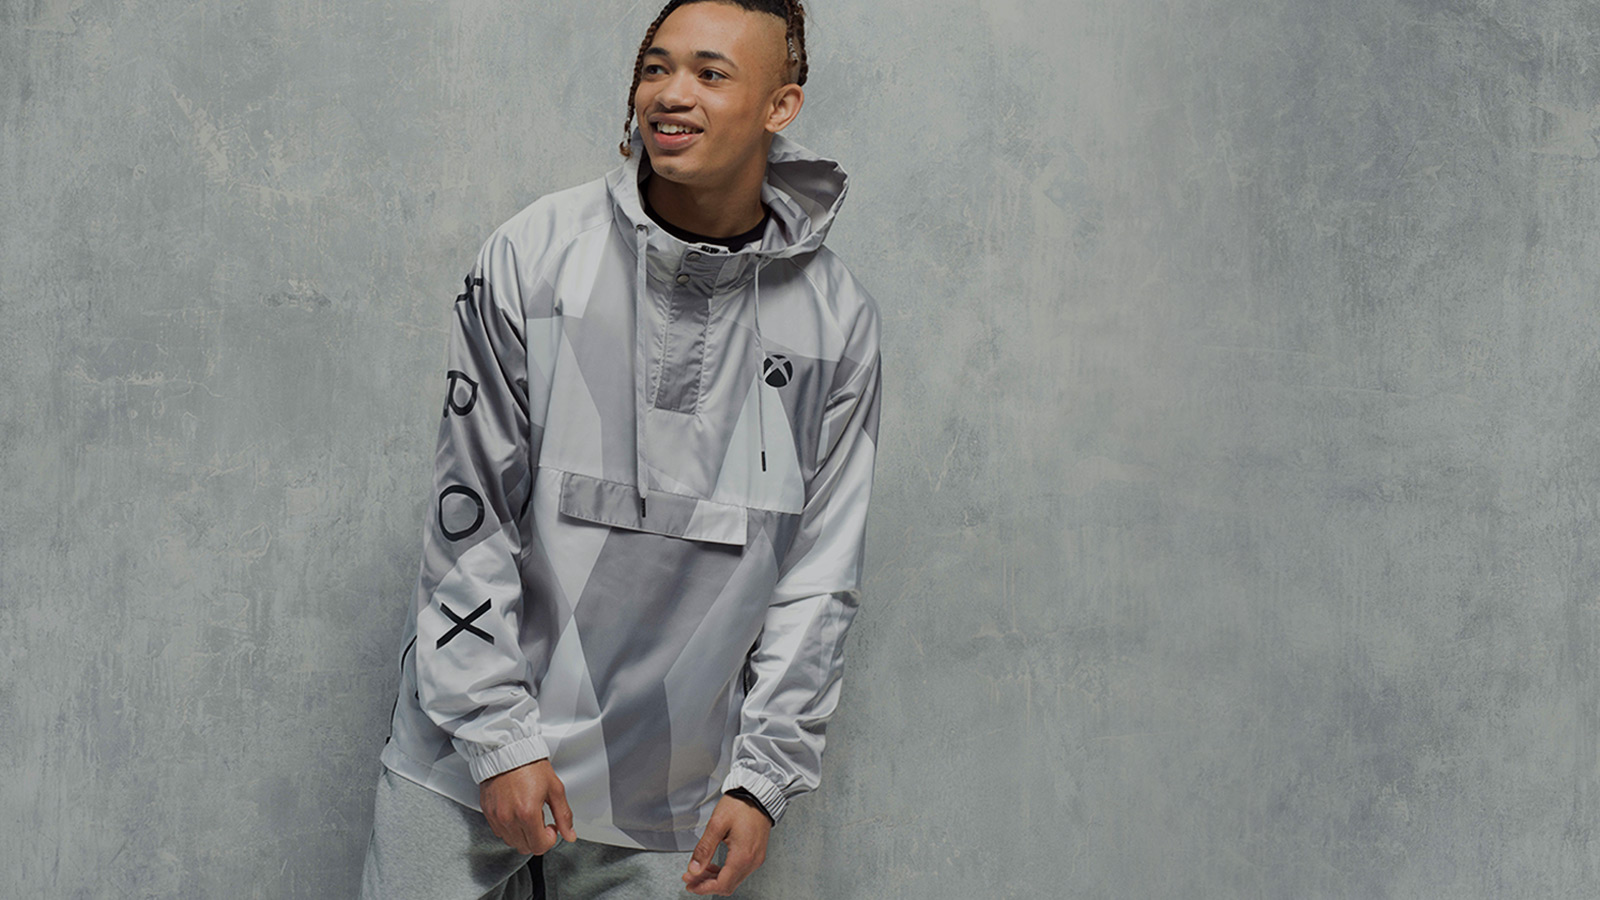 Man wearing an xbox sweat shirt in front of a grey background